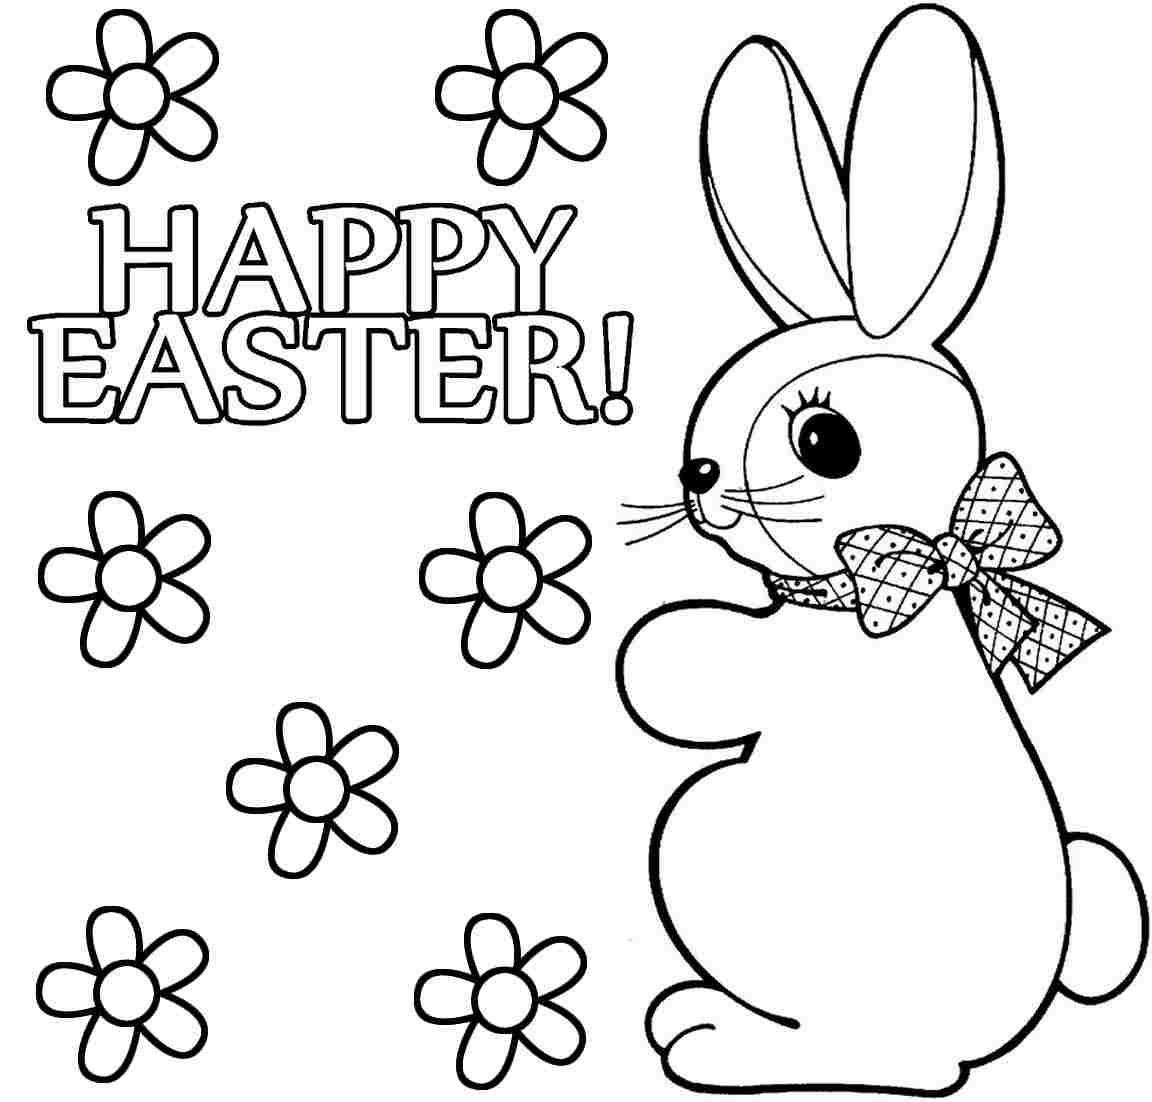 coloring pages of a bunny bunny coloring pages best coloring pages for kids coloring bunny pages of a